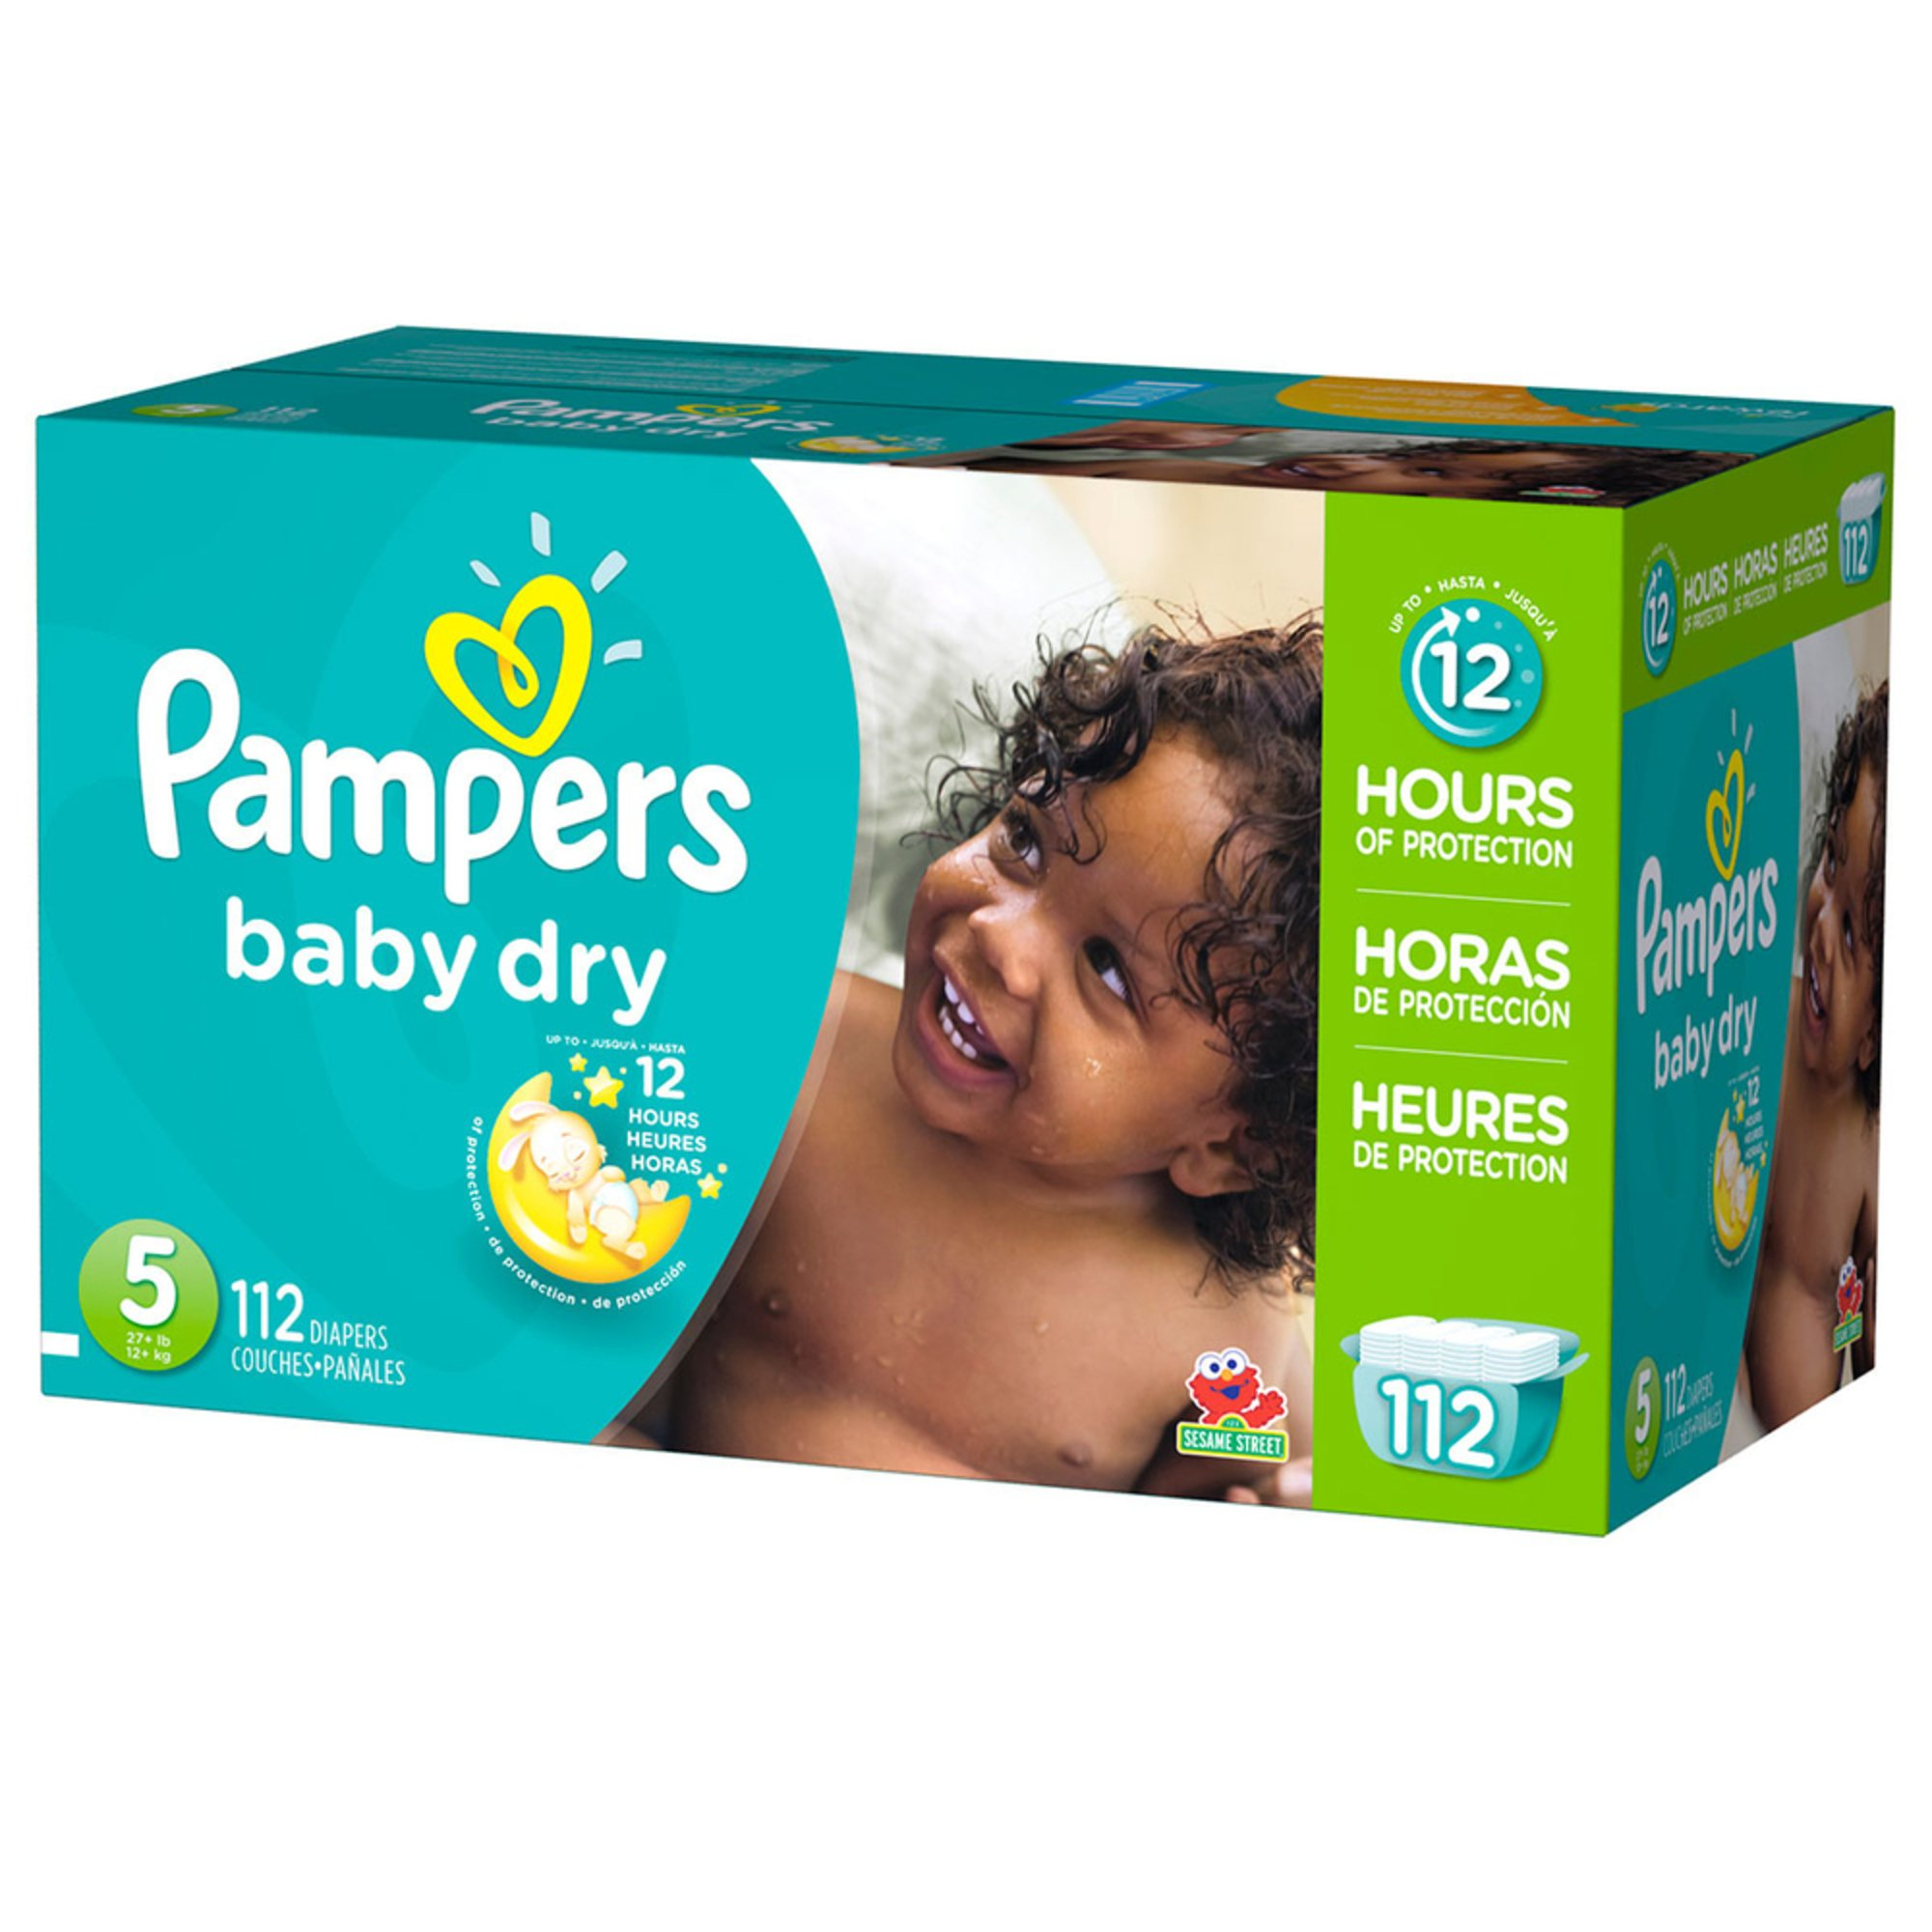 Pampers Baby Dry Size 5 Giant Pack 112 Count